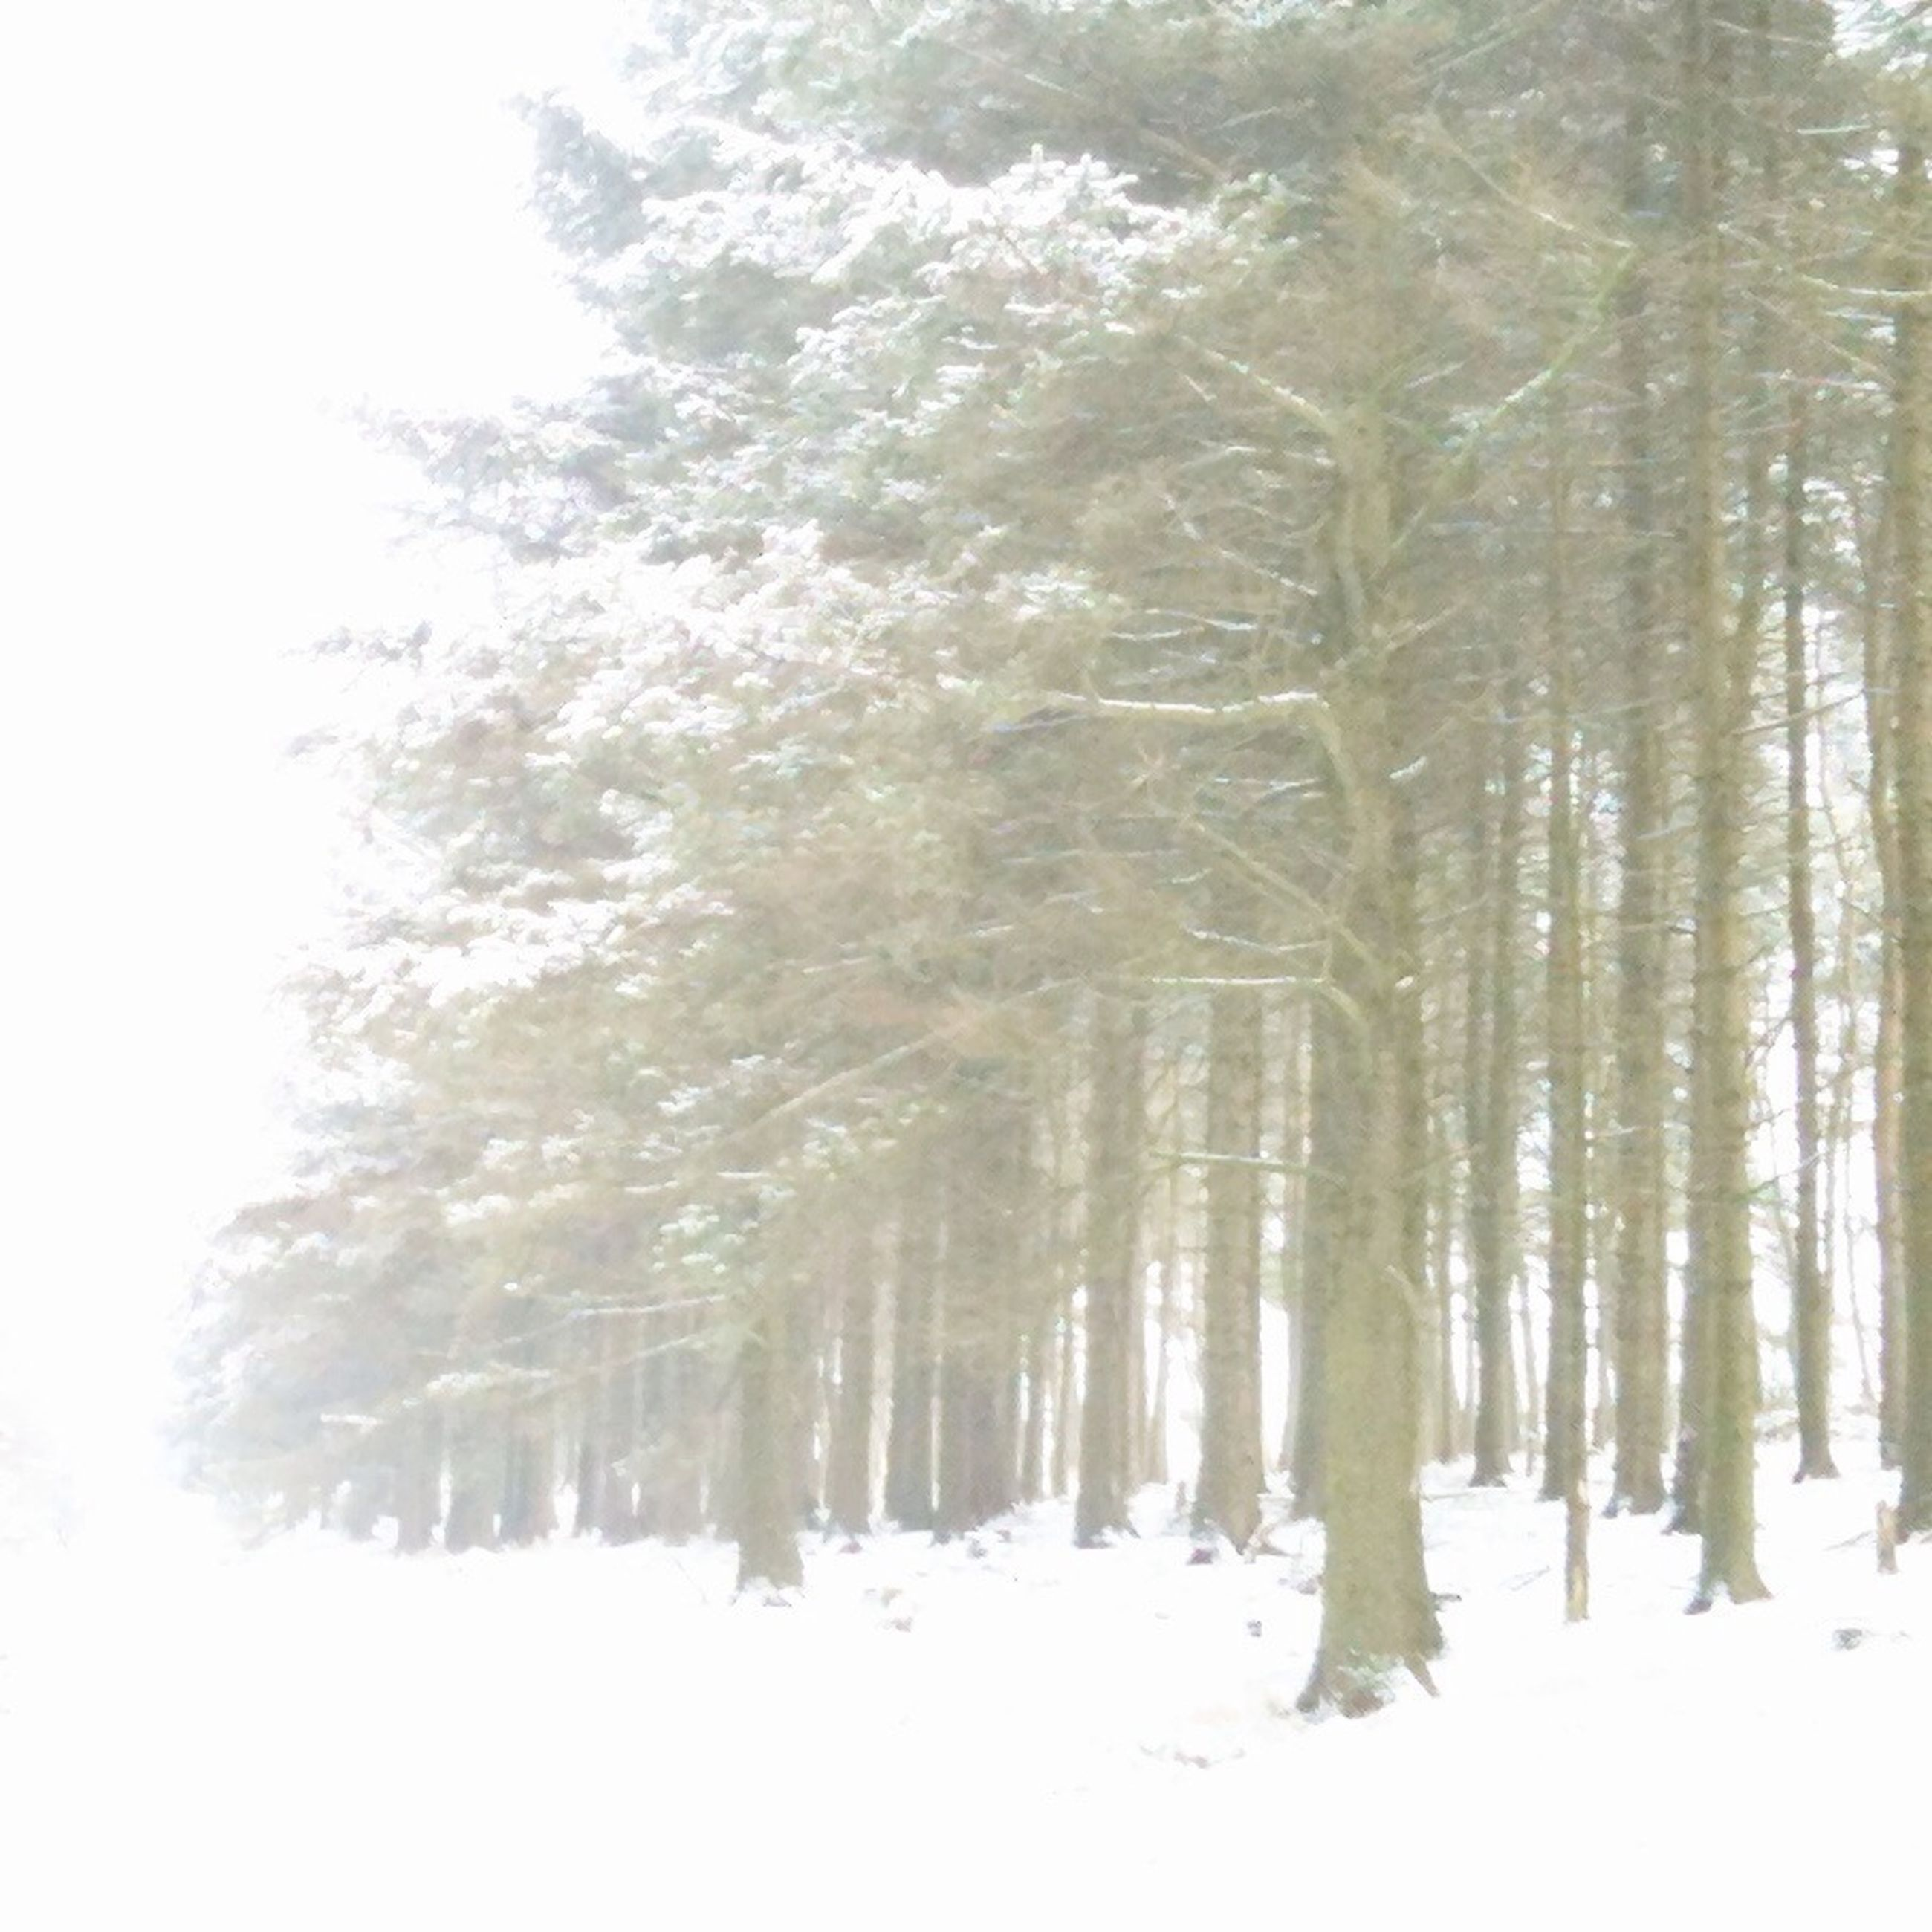 snow, winter, cold temperature, tree, tranquility, weather, season, tranquil scene, forest, nature, woodland, beauty in nature, tree trunk, scenics, covering, landscape, growth, non-urban scene, field, white color